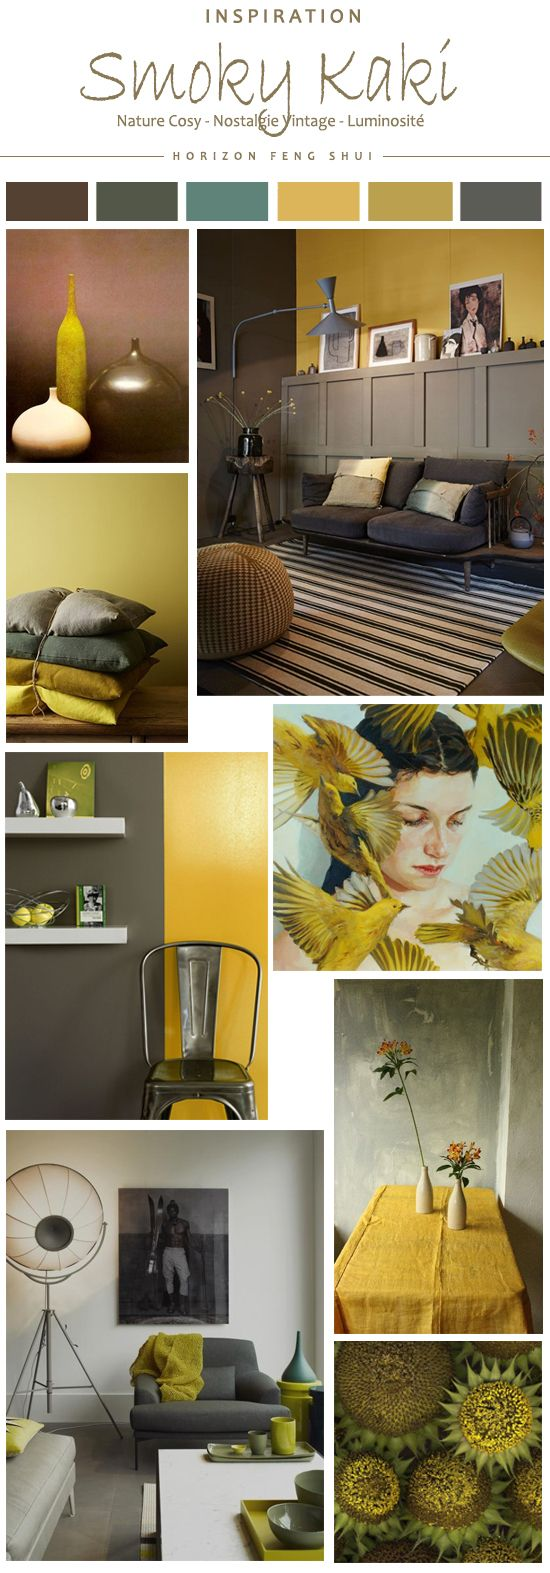 Tendance couleur smoky kaki jaune moutarde ocre gris for Salon kaki et blanc